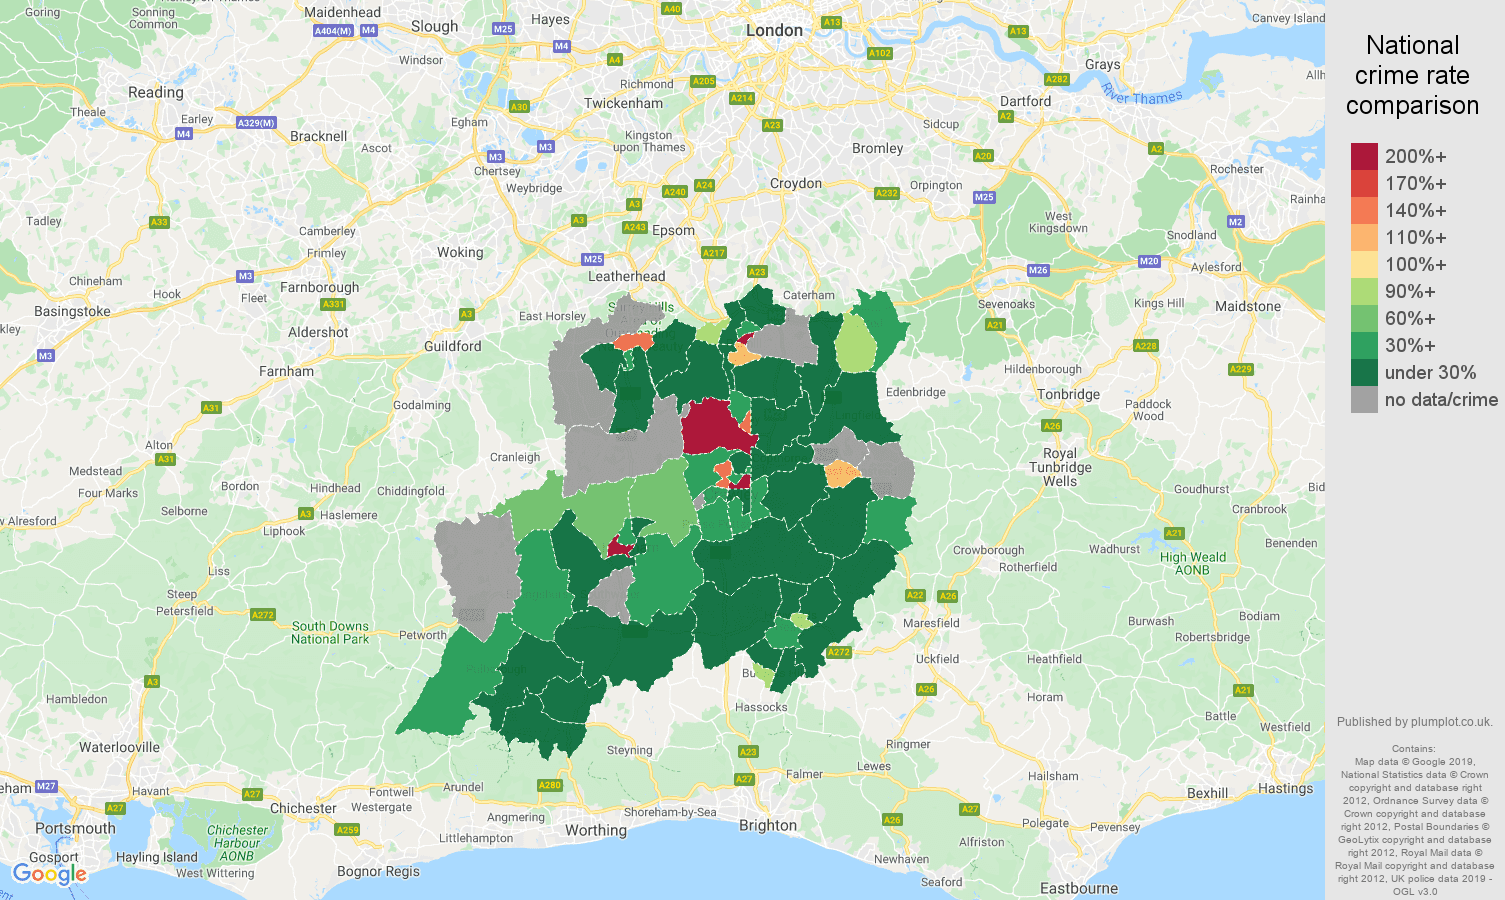 Redhill shoplifting crime rate comparison map